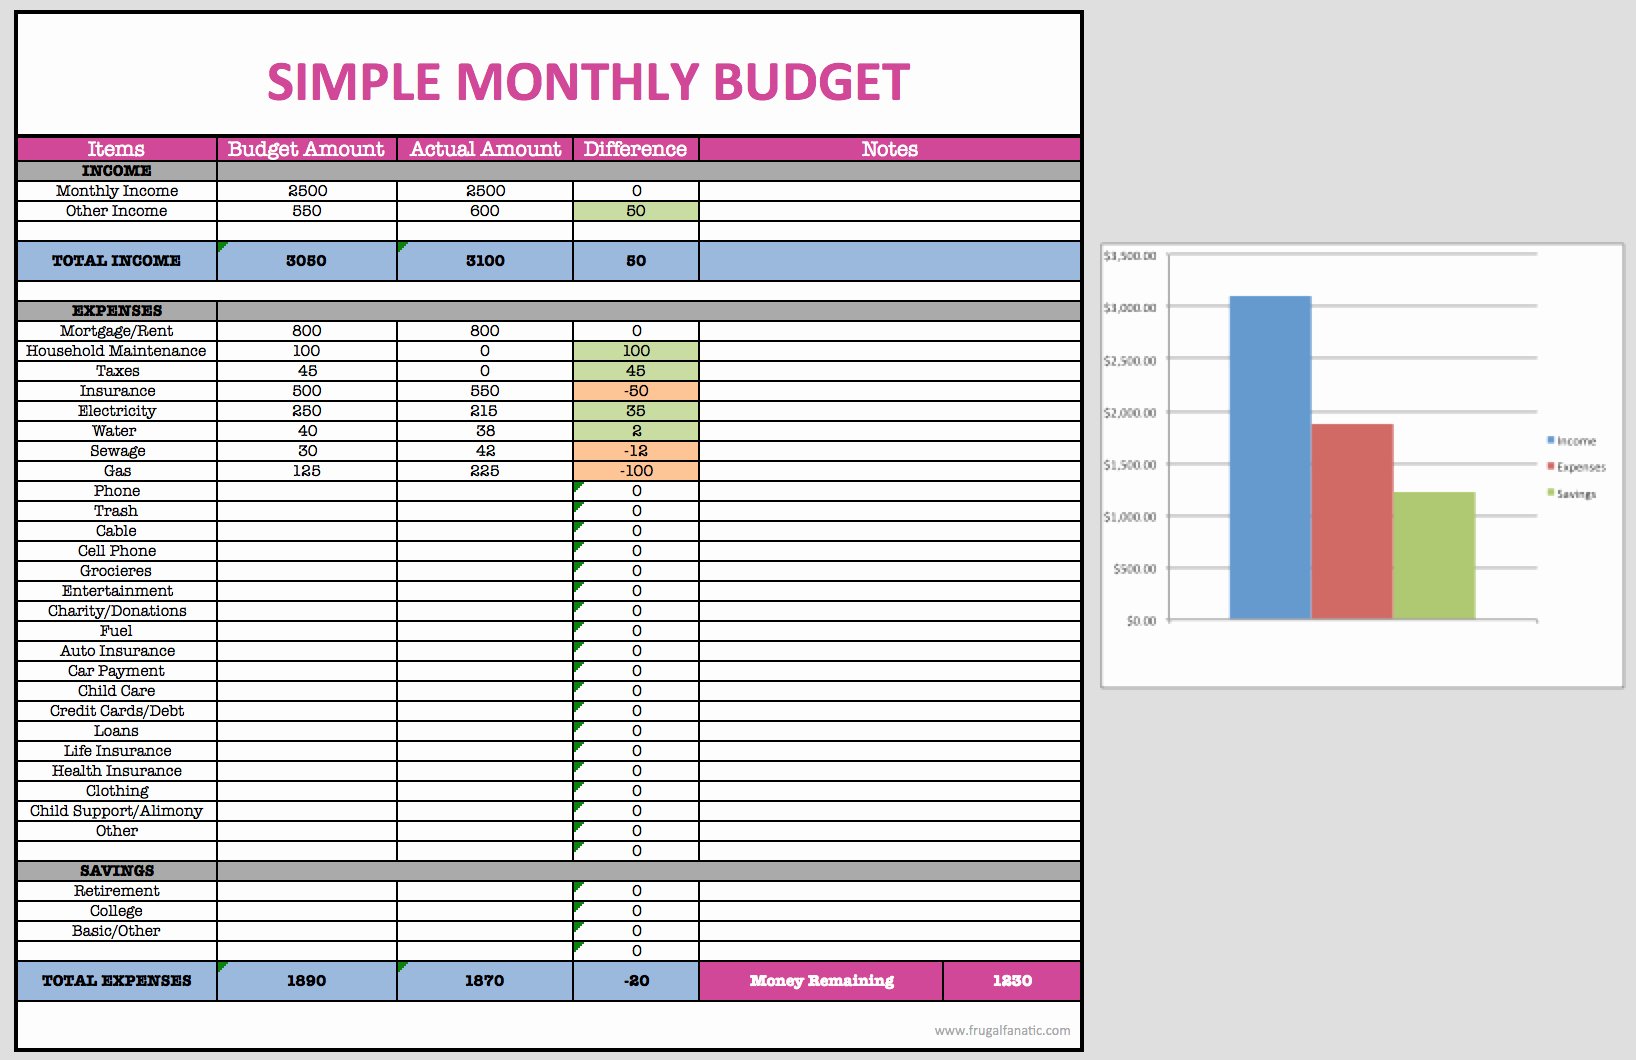 Monthly Budget Excel Spreadsheet Template Best Of Monthly Bud Spreadsheet Frugal Fanatic Shop